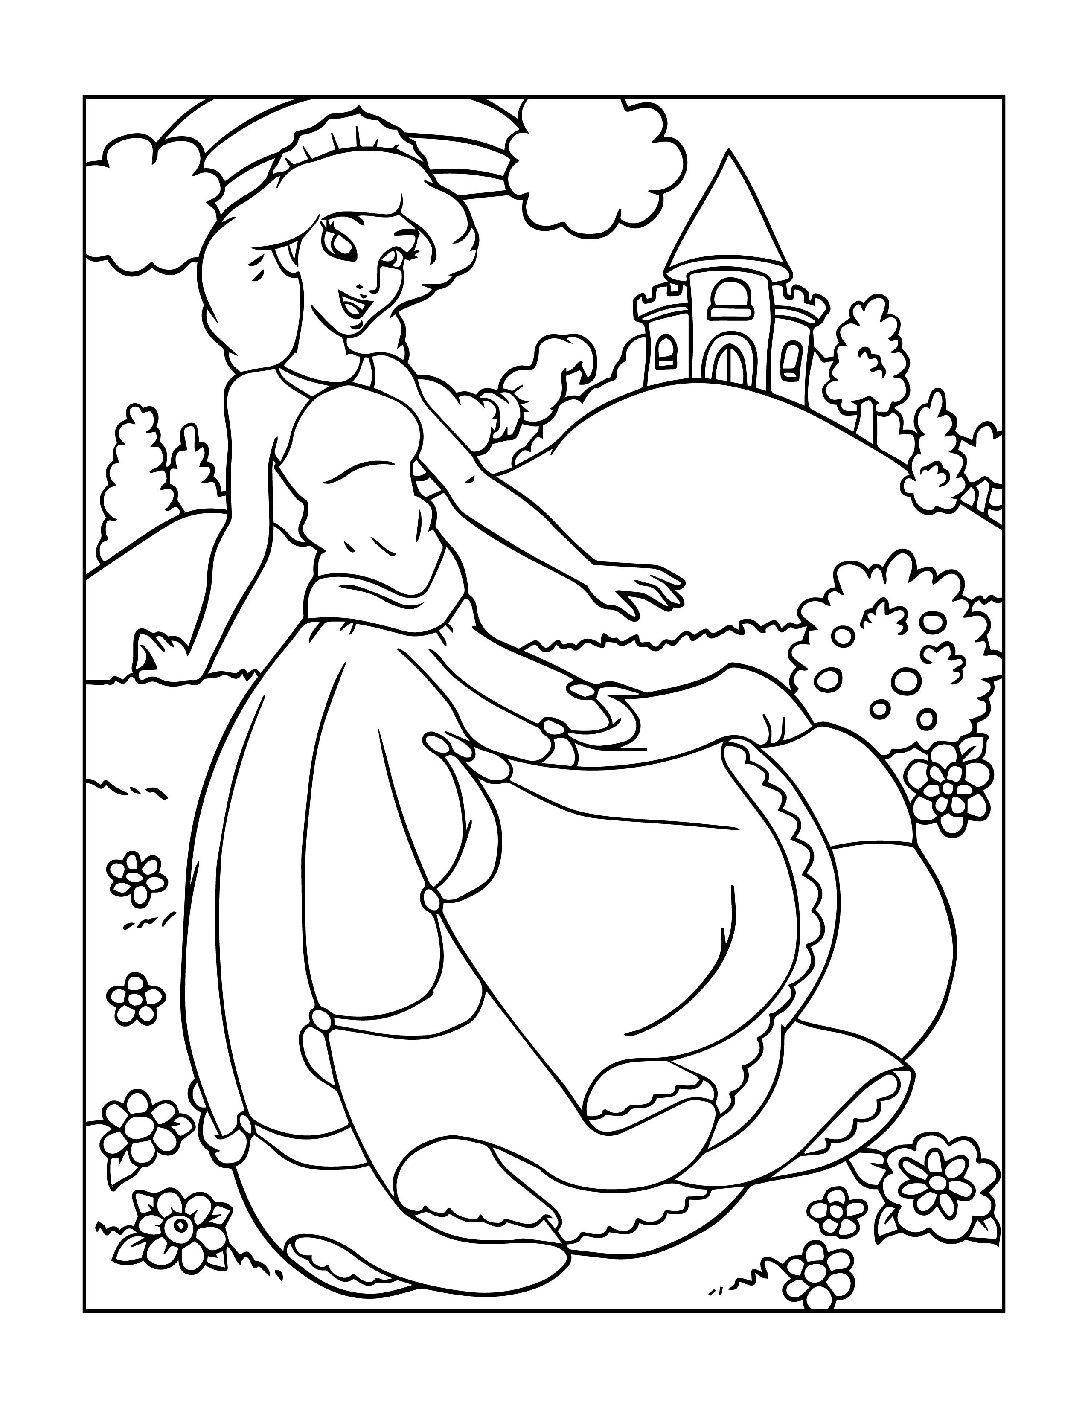 Coloring-Pages-Princess-5-01-pdf Free Printable Princesses Colouring Pages